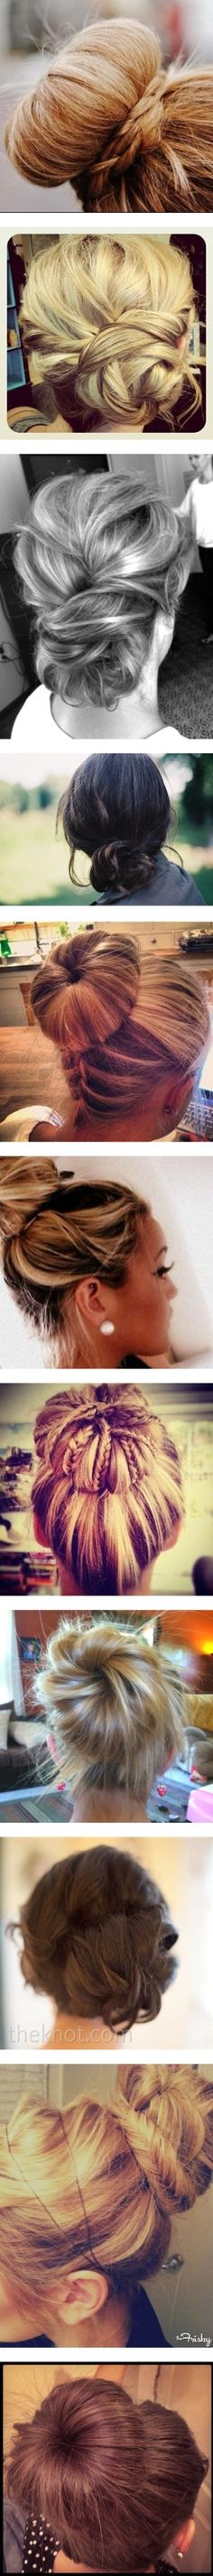 Great idea on easy messy hair days !